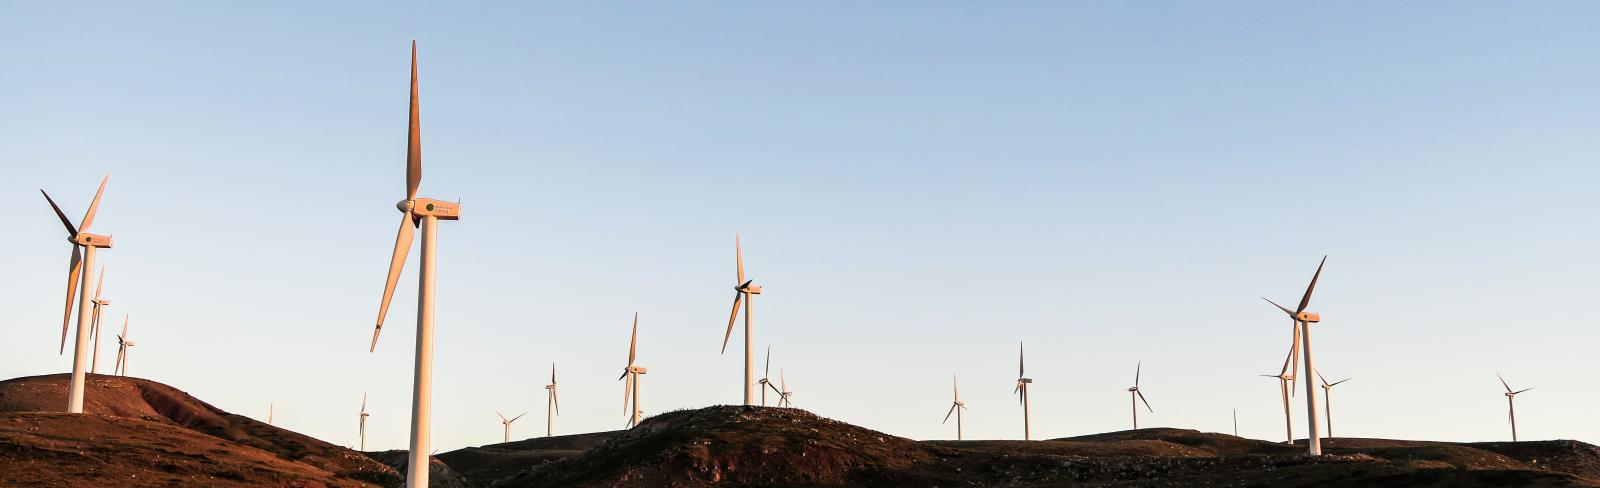 Wind turbines in Greece. Photo by Jason Blackeye